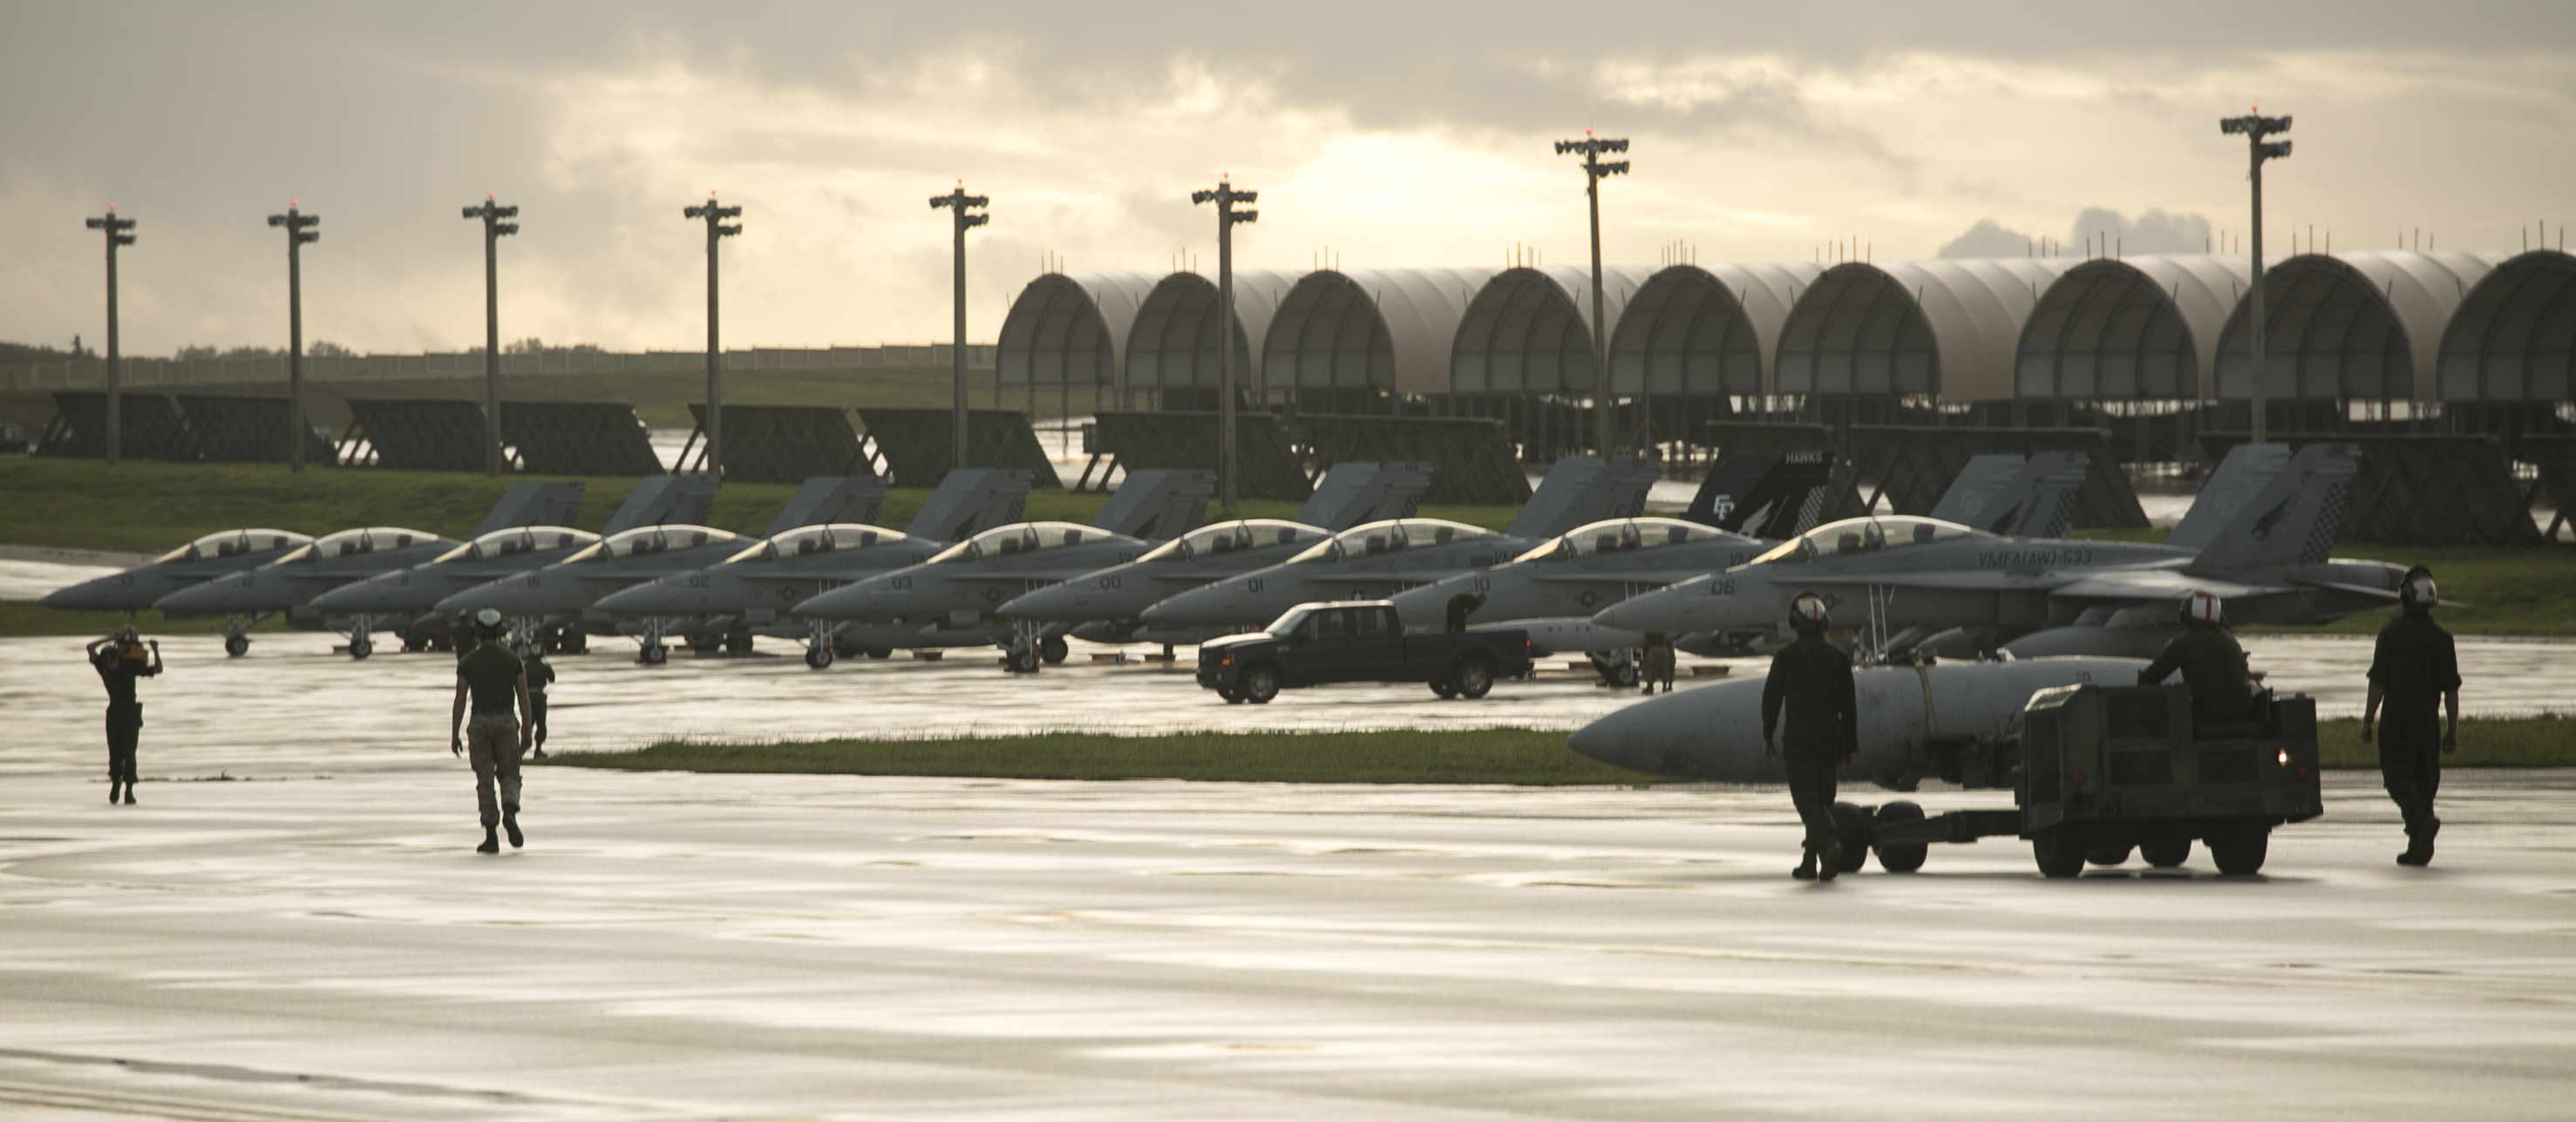 Aircraft maintenance Marines make their way to conduct maintenance procedures on aircraft during a maintenance-focused exercise in October 2014. US Marine Corps photo.